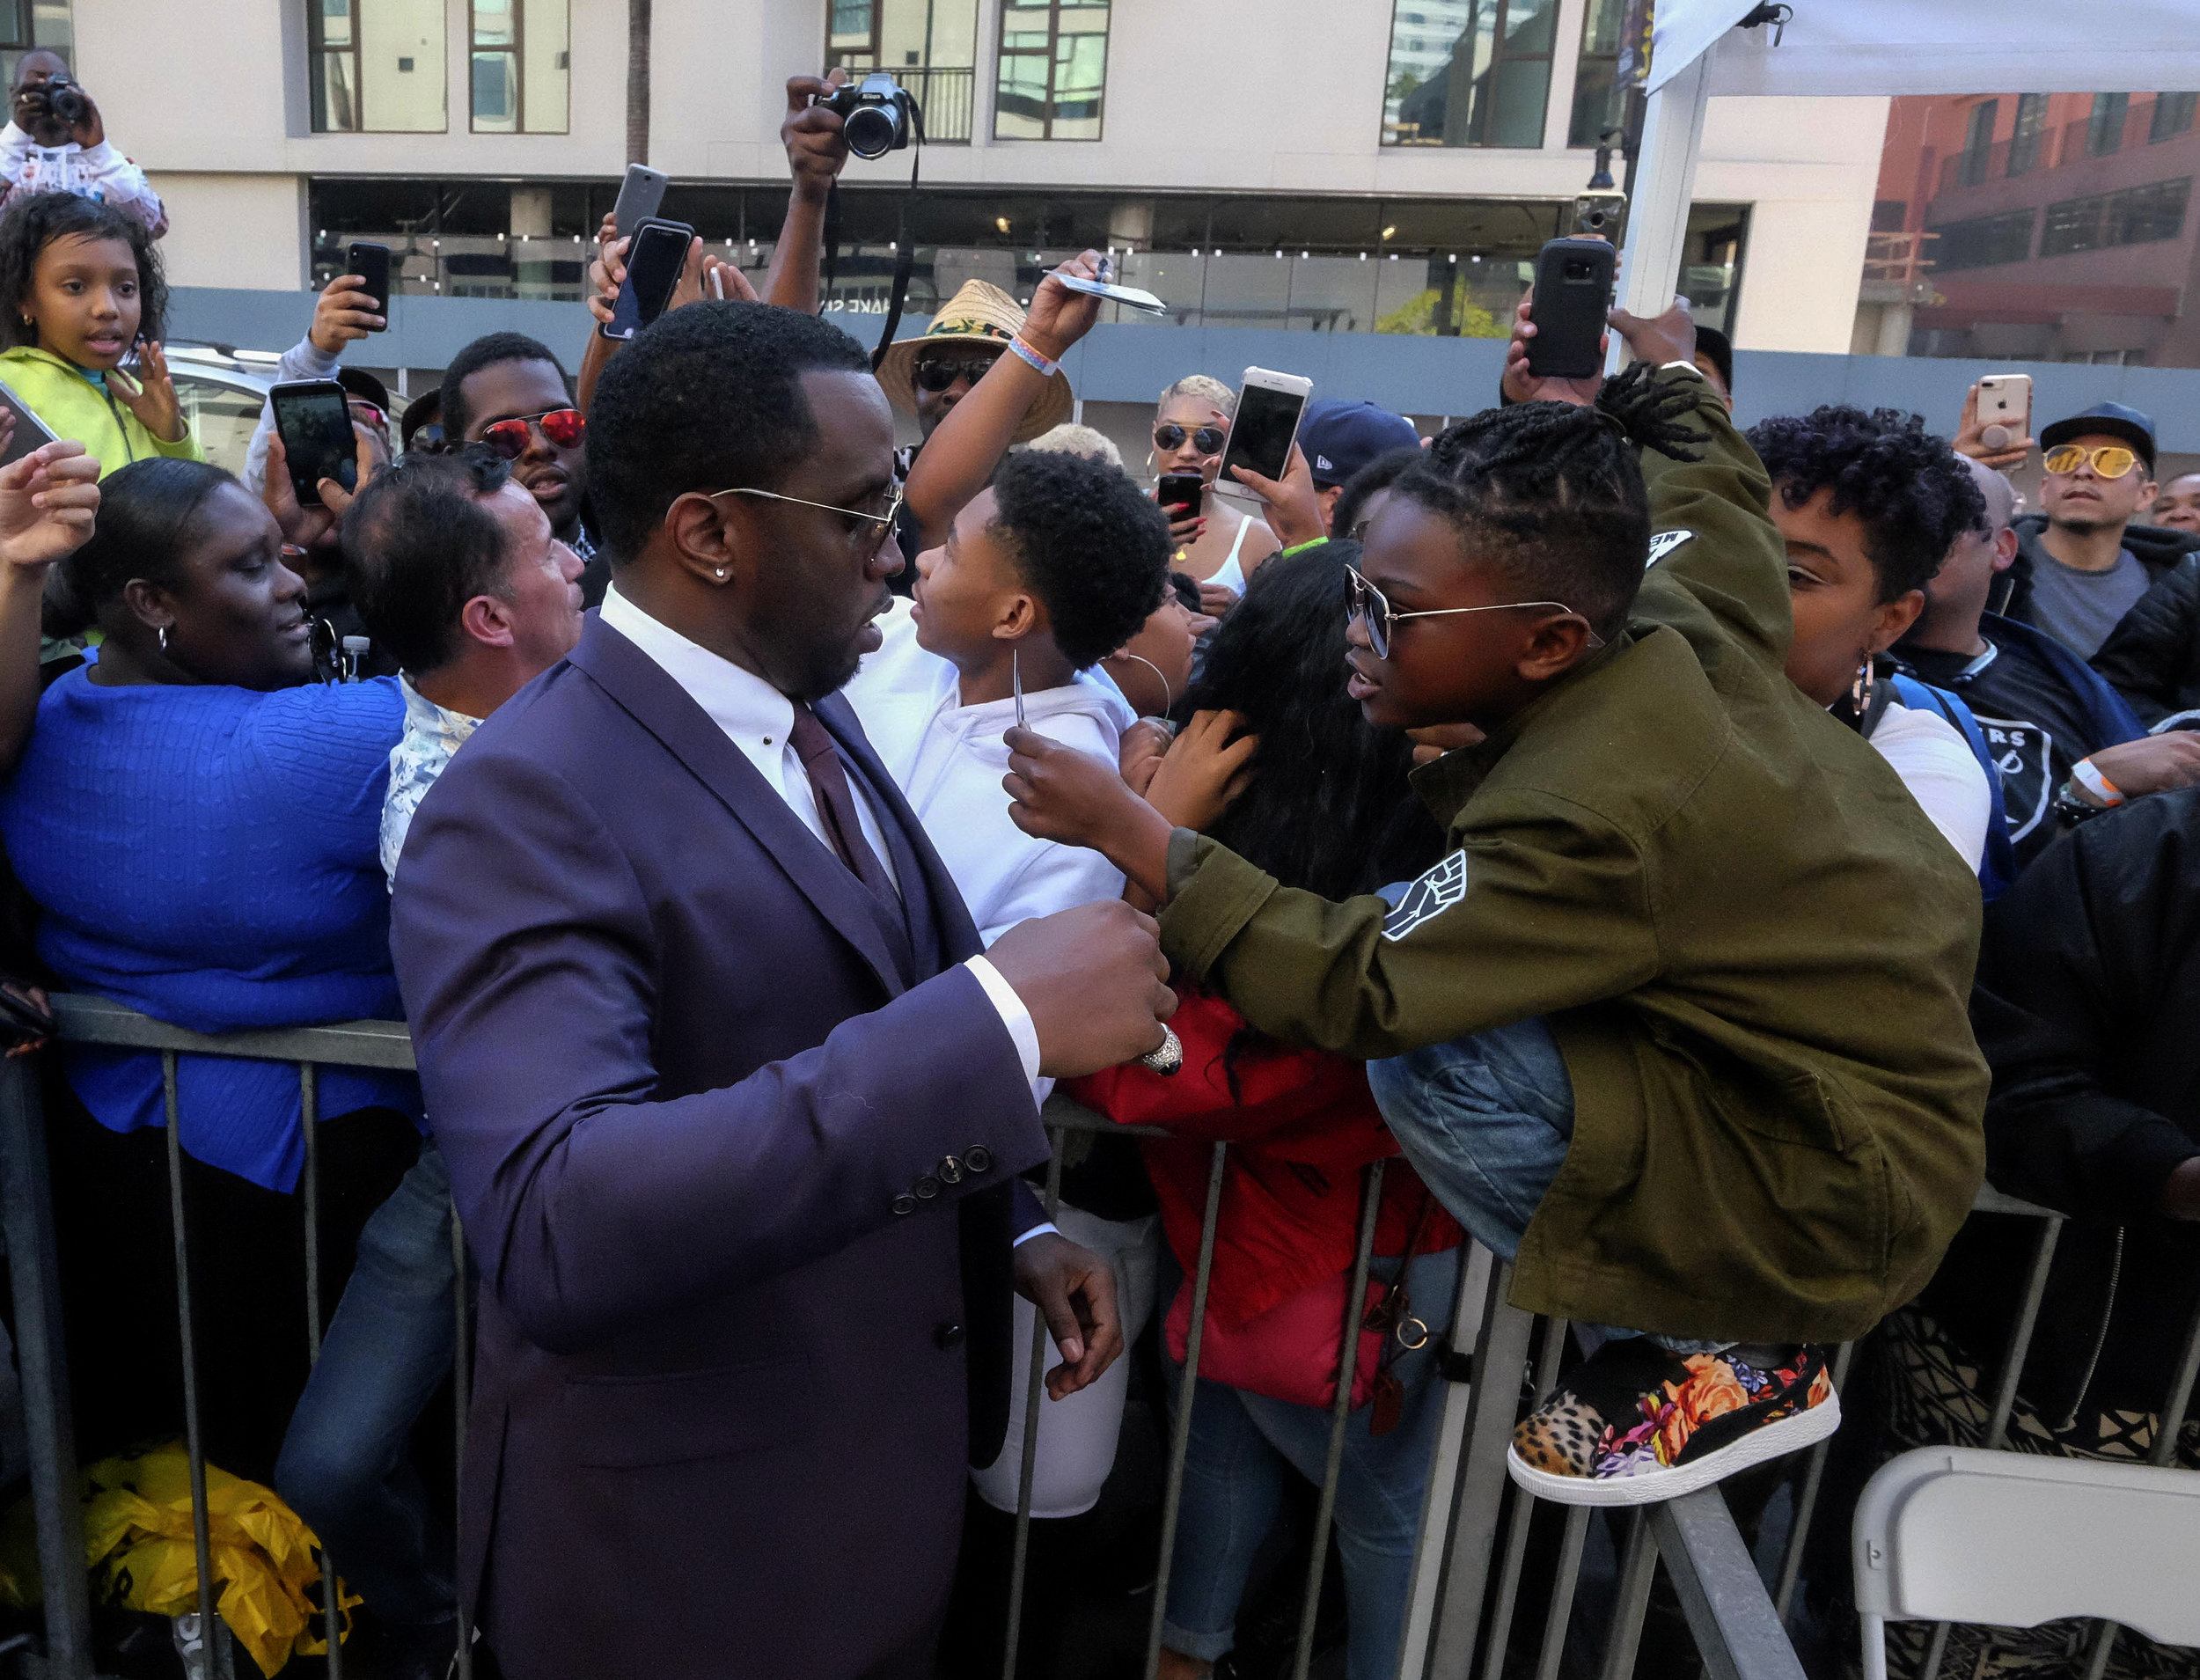 A young fan asks Sean 'Diddy' Combs for an autograph as he attends the ceremony honoring Mary J. Blige with a Star on The Hollywood Walk of Fame held on January 11, 2018 in Hollywood, California.